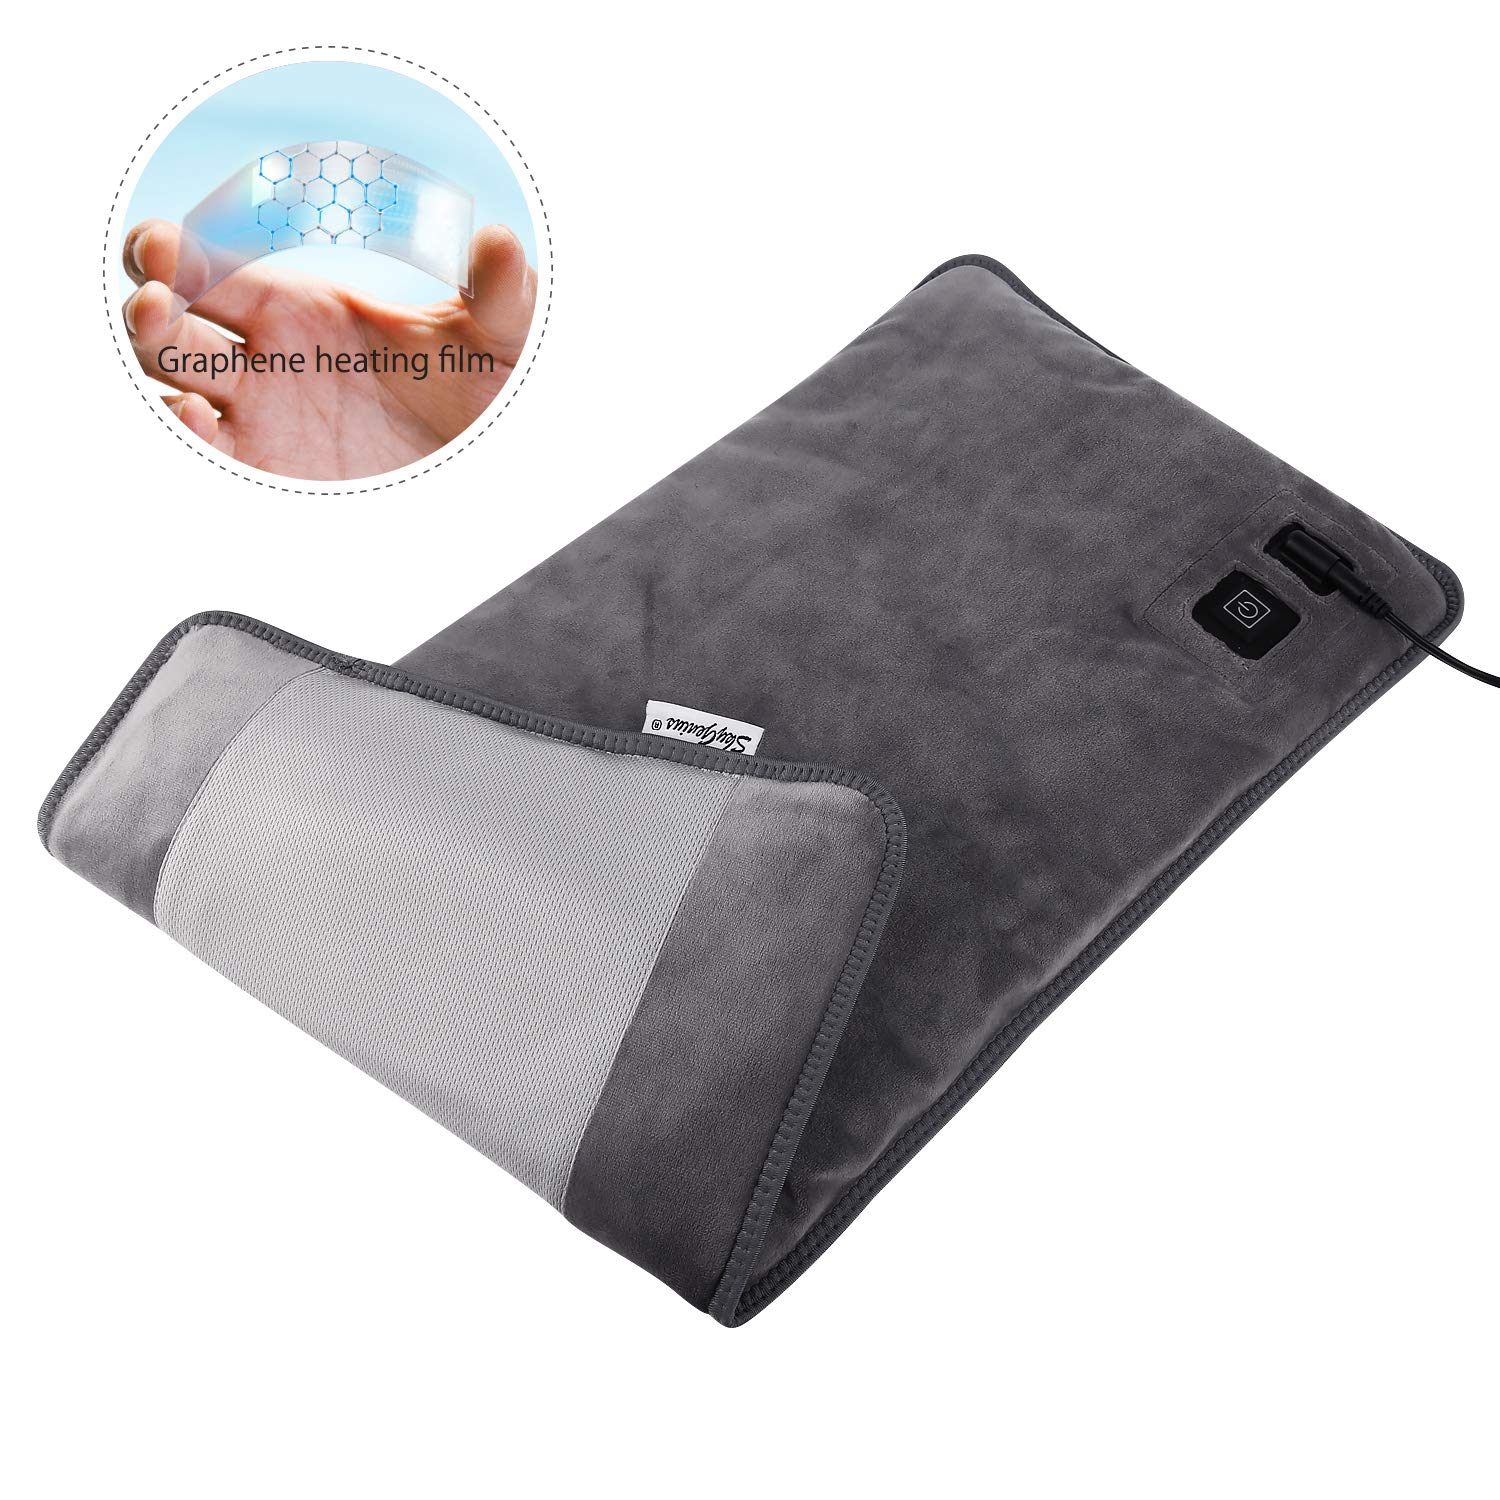 Far Infrared Electric Heating Pad for Back Pain, Heating Pads with Innovative Graphene Heating Films, for Lower Back, Menstrual, Cramps, Pain Relief - Large Size 12 * 24inches by SkyGenius